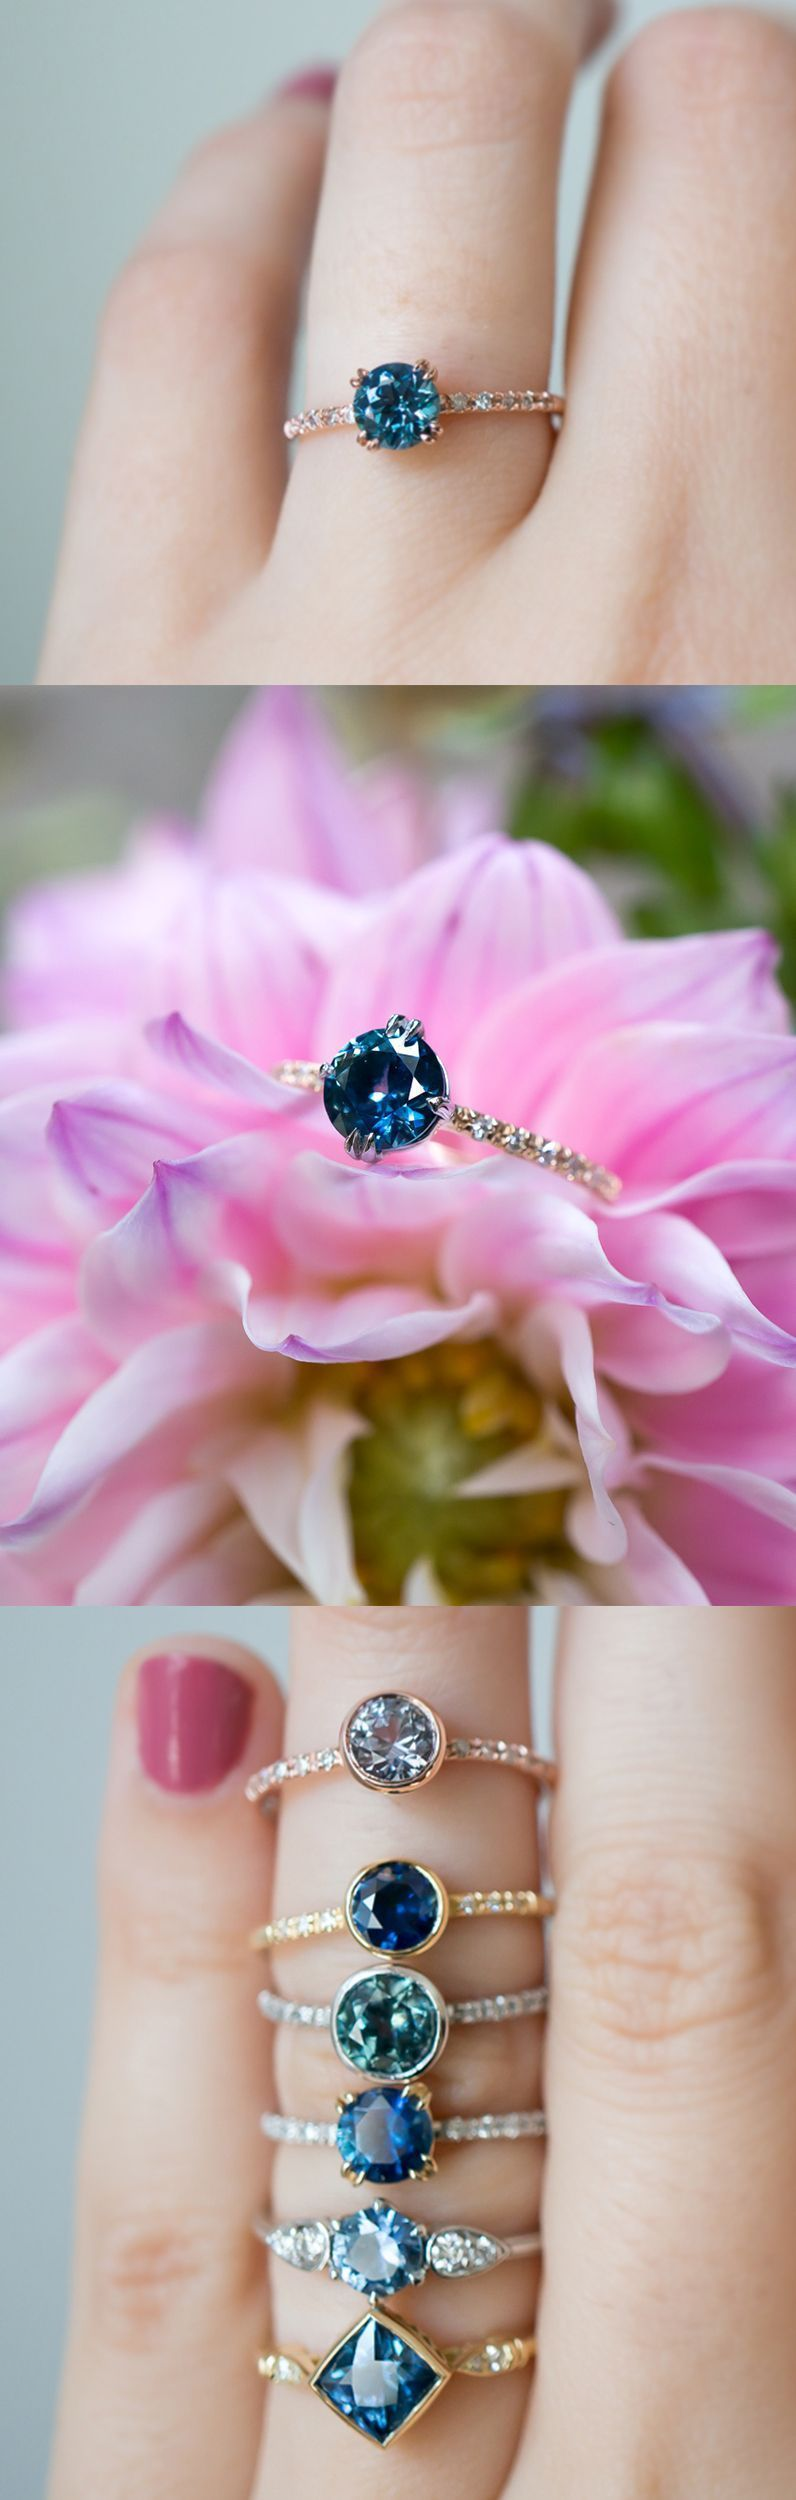 Unique vintage inspired Sapphire engagement rings by S. Kind & Co ...